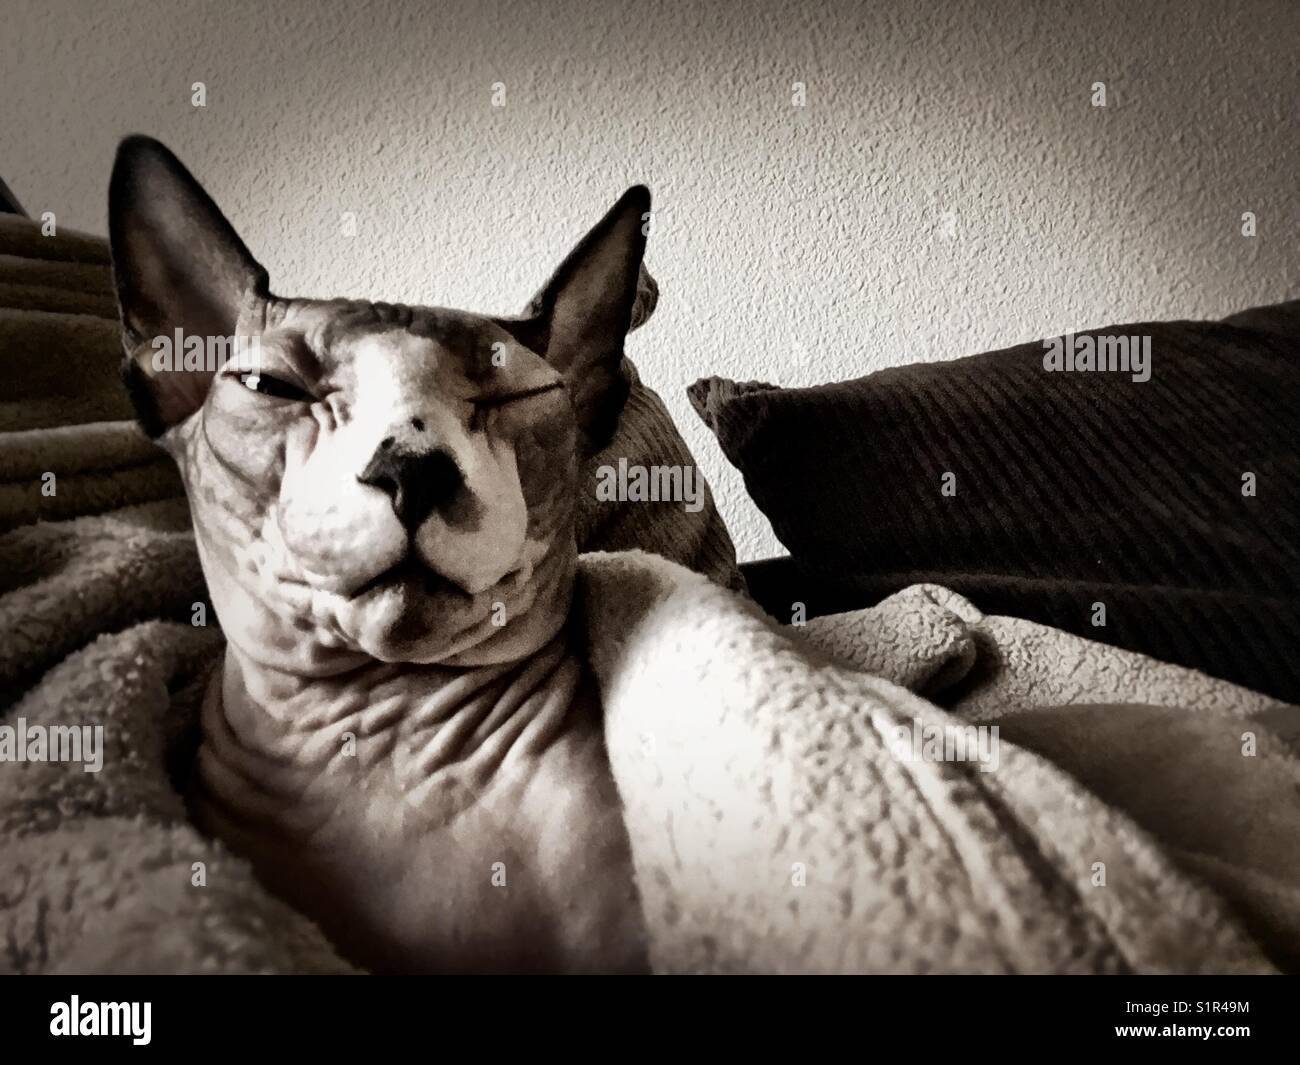 A sleepy hairless Sphynx cat wrapped in a blanket - Stock Image